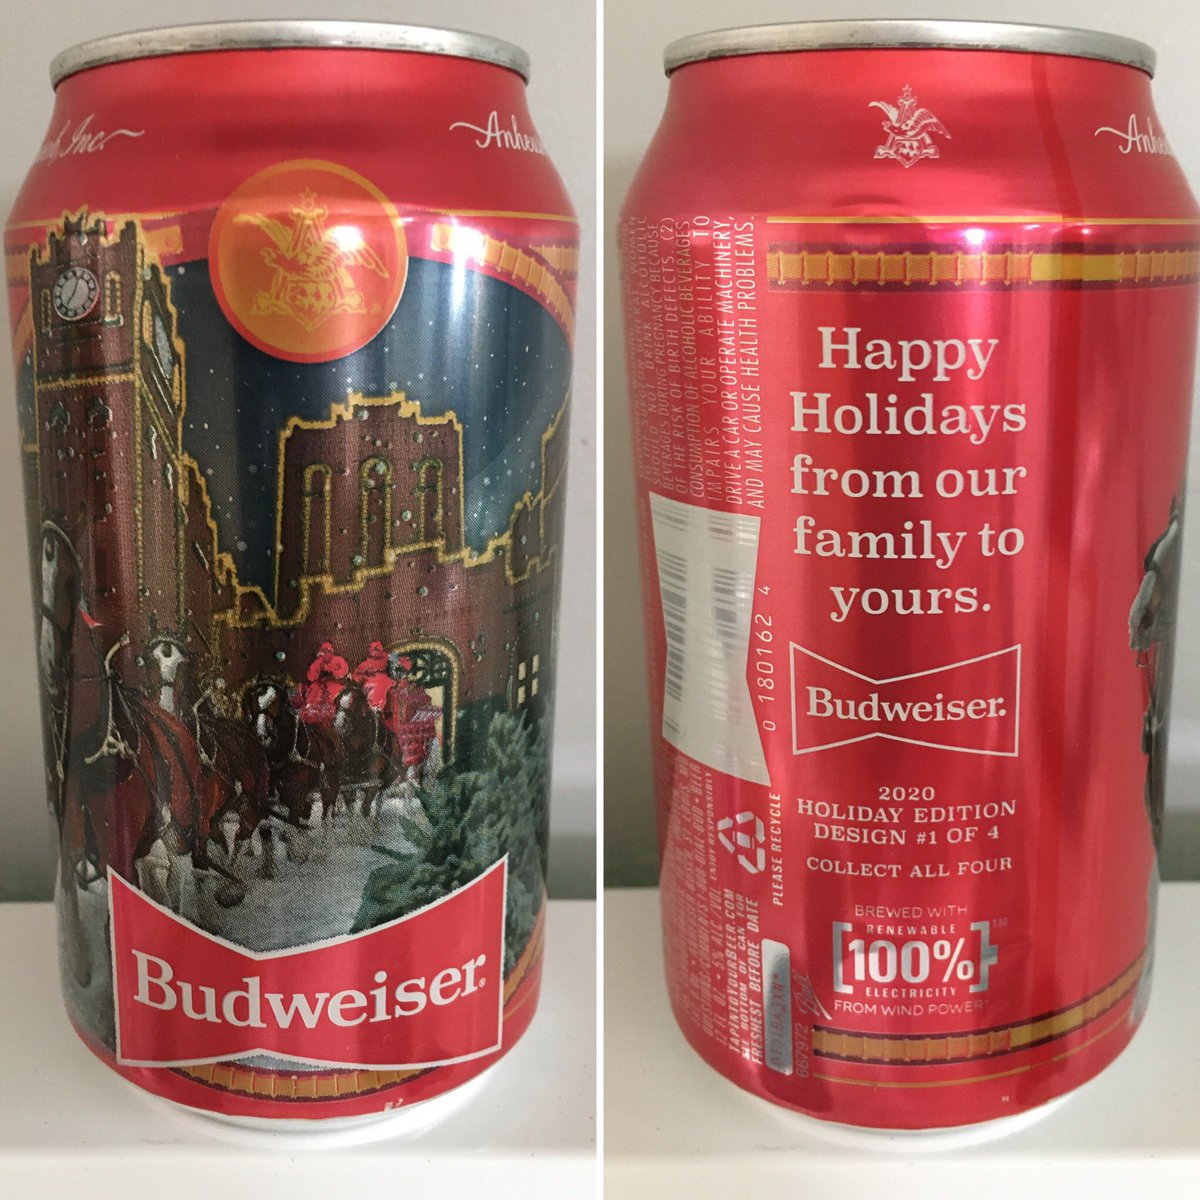 @Budweiser @budweiserusa 2020 Holiday Edition Design 1 of 4 #canmuseum